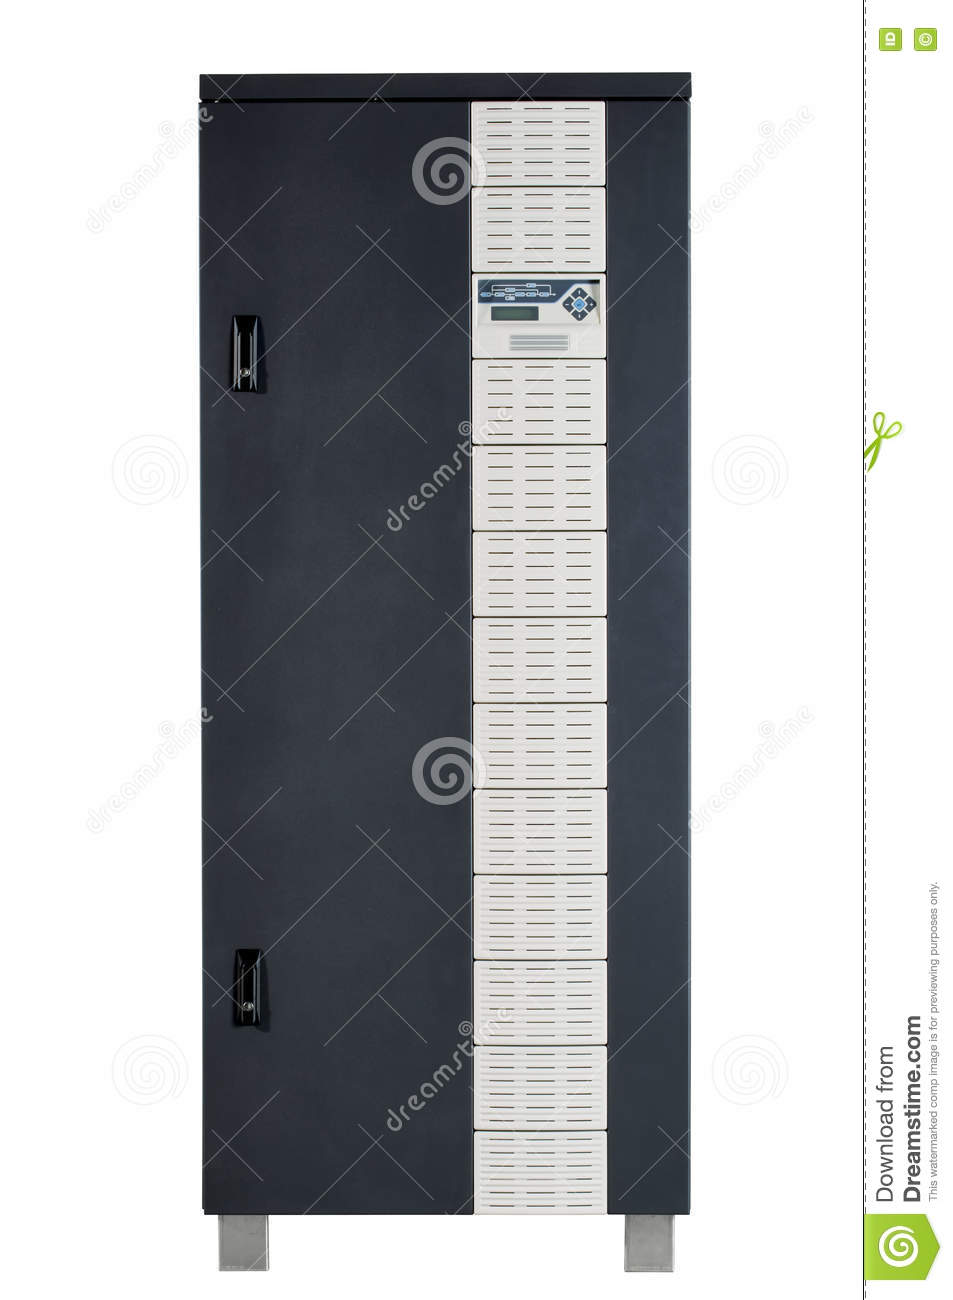 Fuse Box Nice Doors Electrical Ups And Control Panel Stock Image Of Cabinet Enclosure Its Door Closed Could Be Circuit Breaker Server Power Source Other 79177215